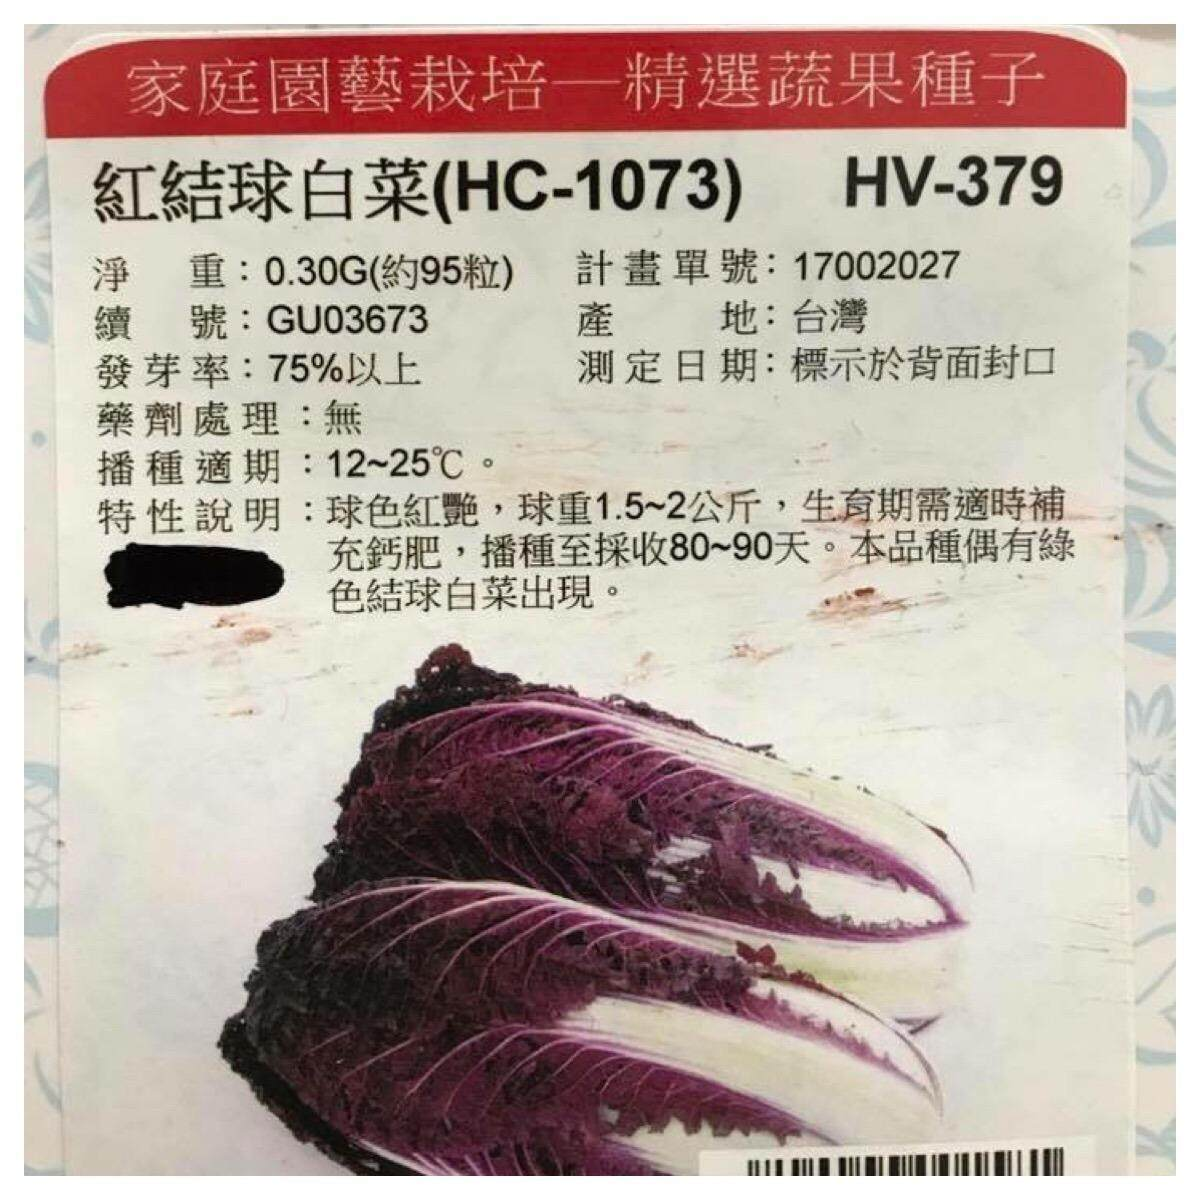 HV-379    Red Chinese Cabbage